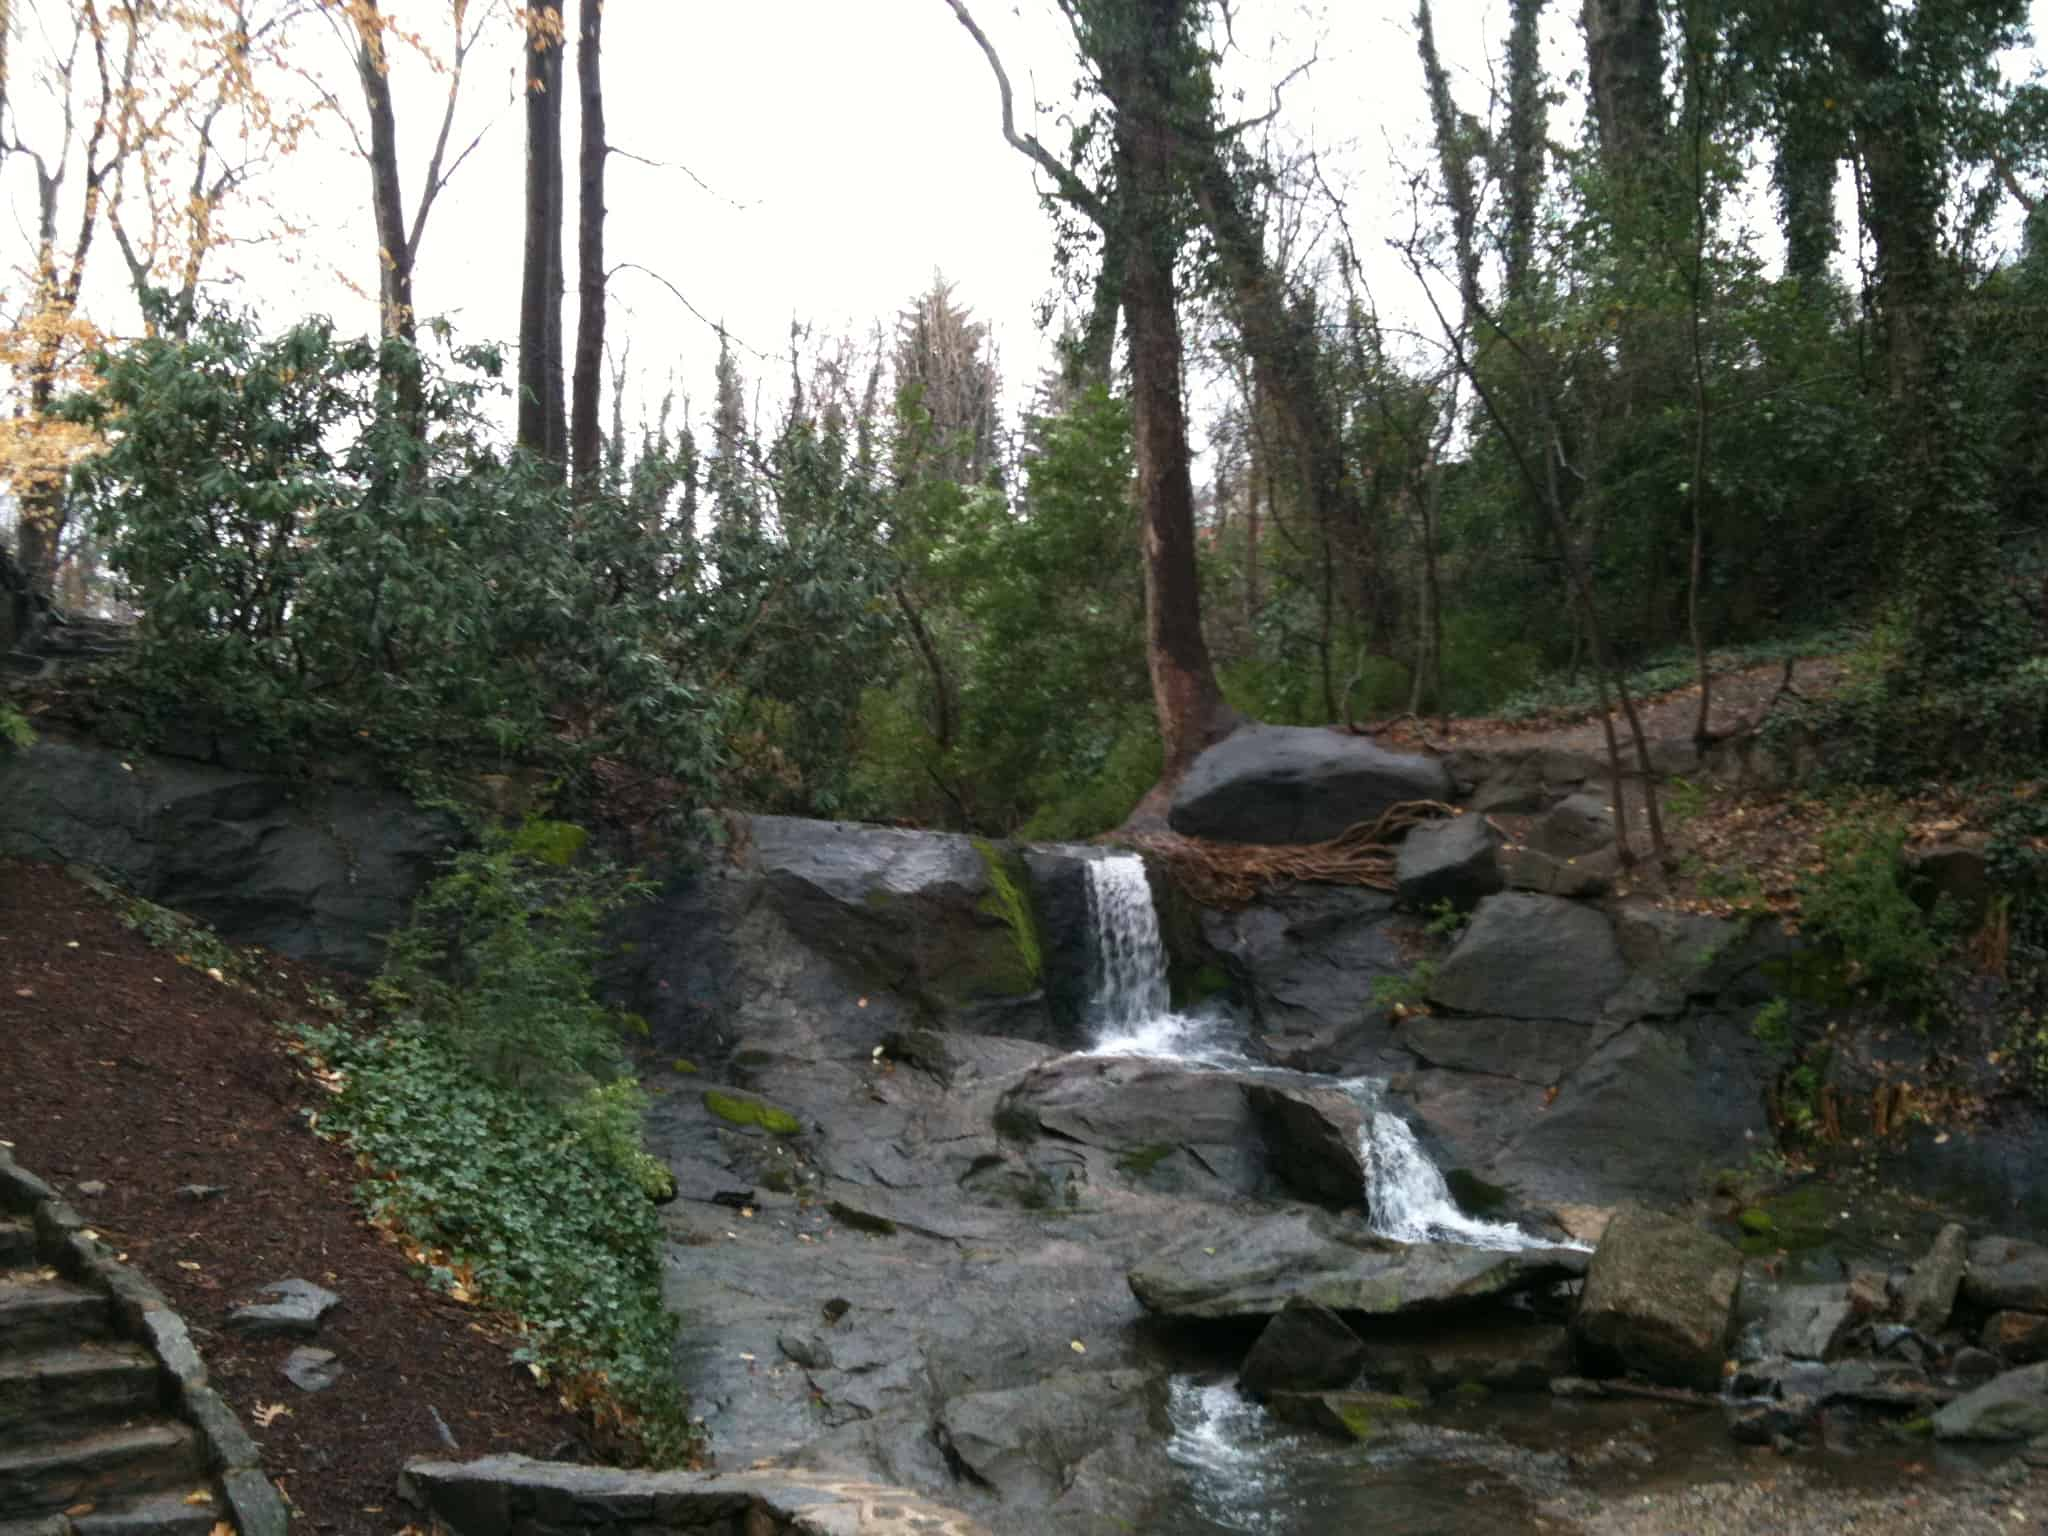 Landscape Design for a Greenville, SC, Public Park: Part One